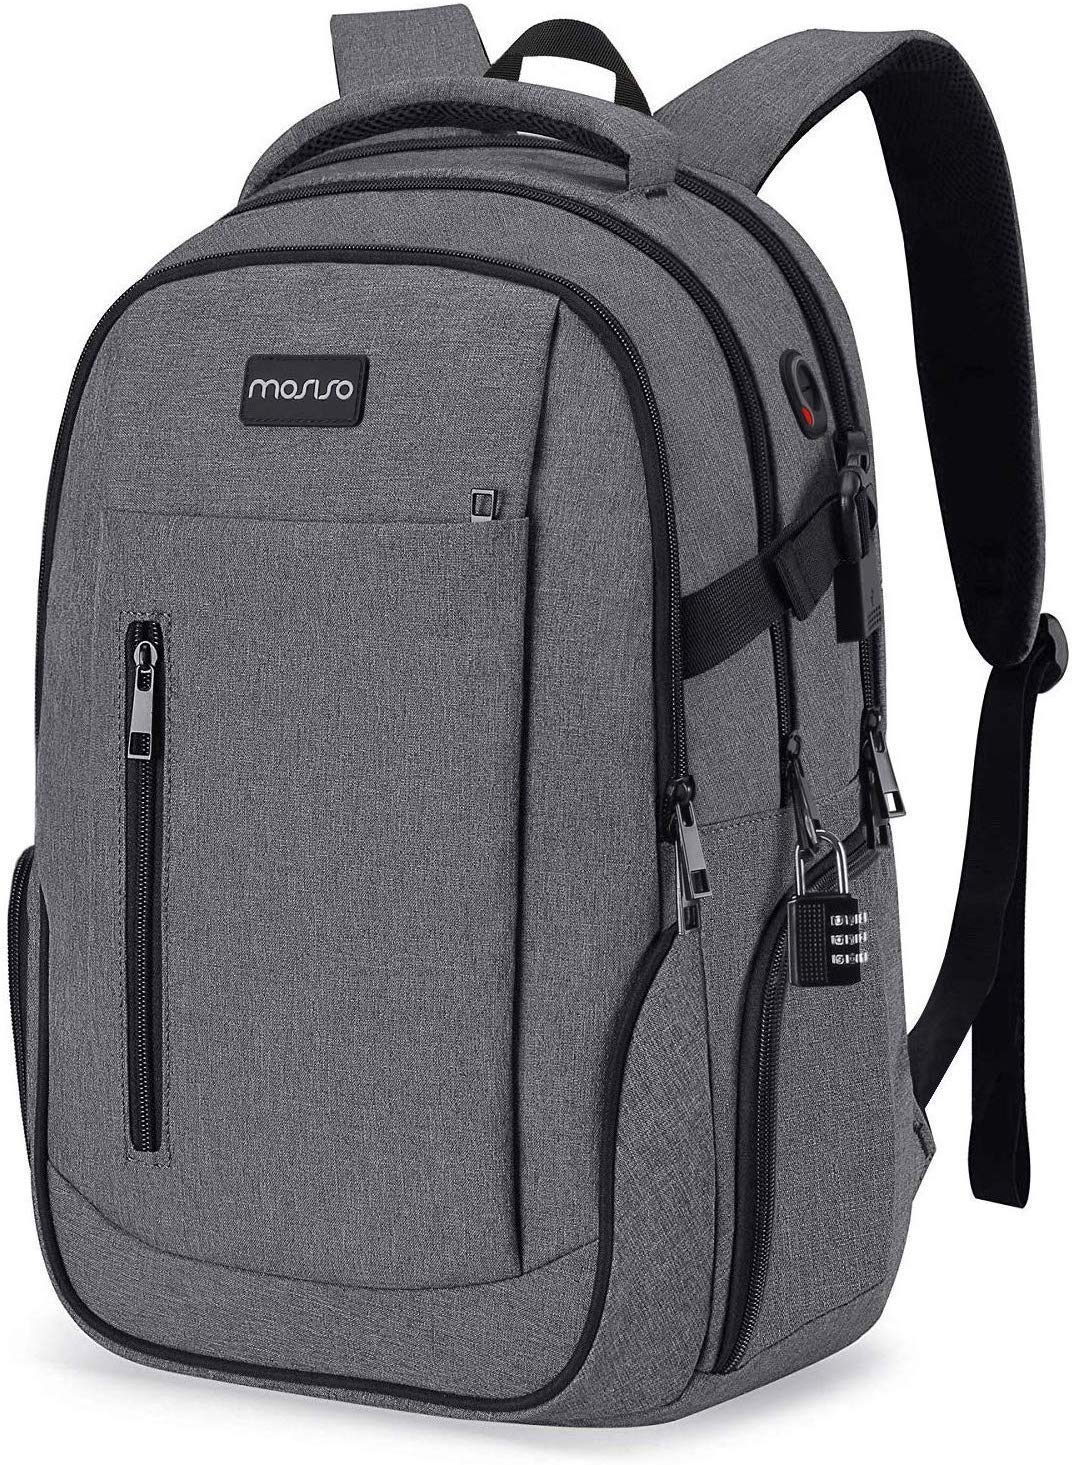 MOSISO Laptop Backpack for 15.6-17.3 inch Computer, Business Travel College School Anti Theft Daypack Bag with USB Charging Port&Lock&Trolley Belt for Women Men Student, Water Repellent Bookbag, Gray